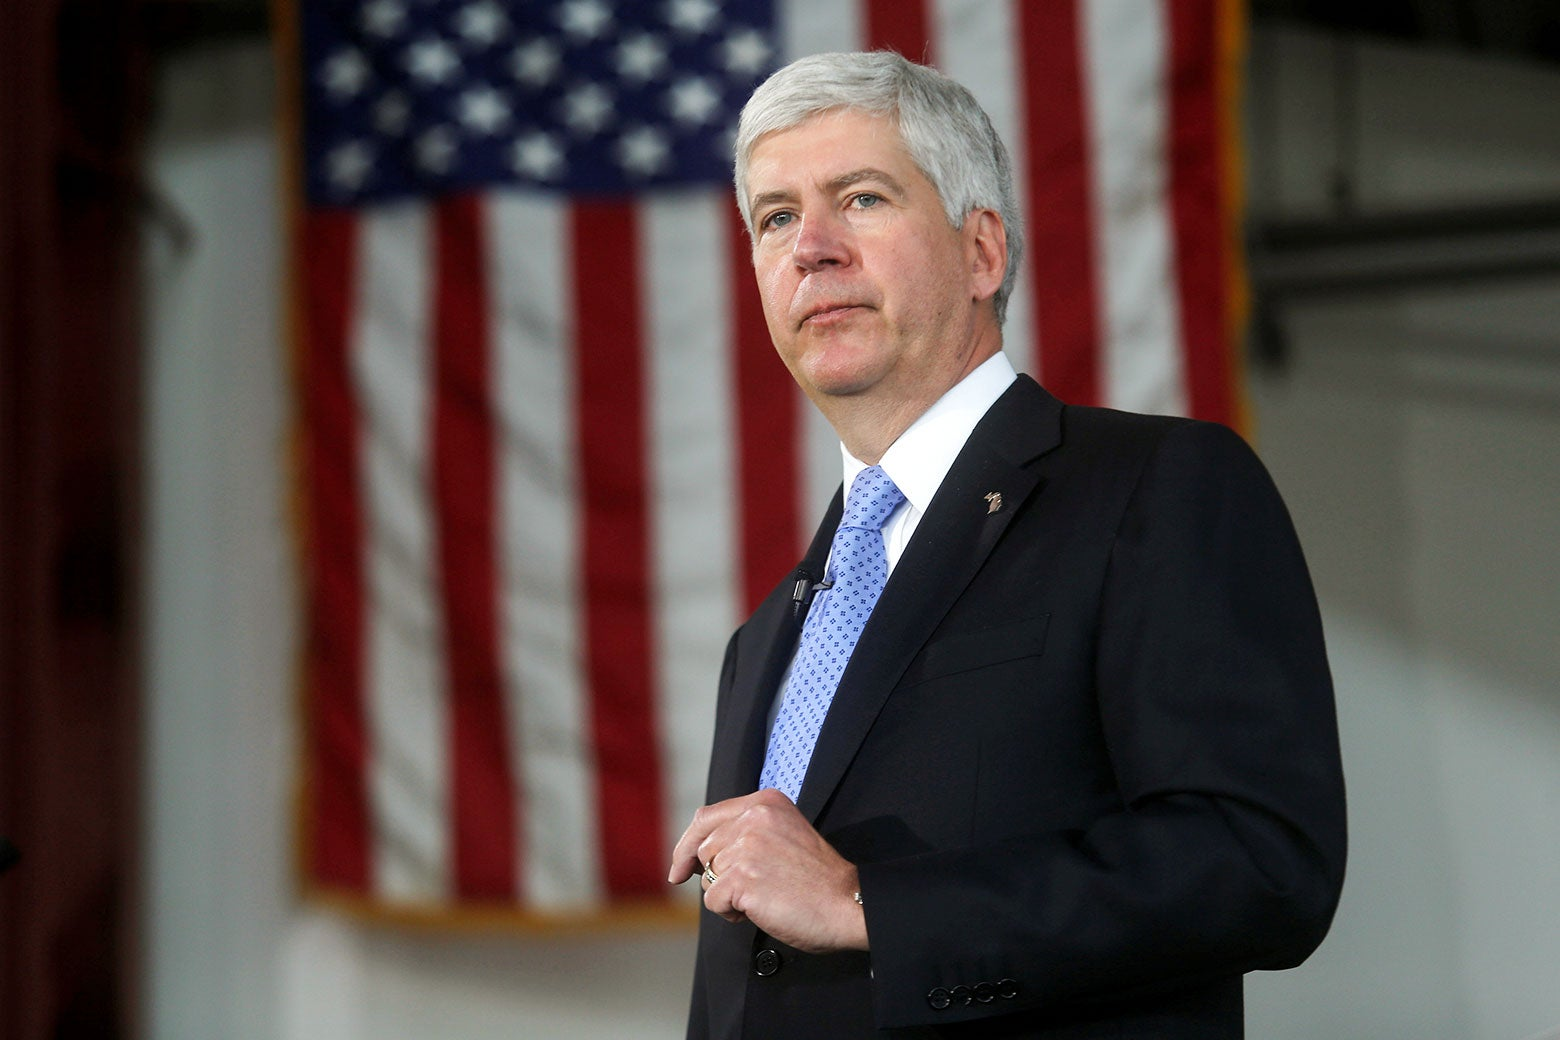 Rick Snyder, with an American flag in the background.